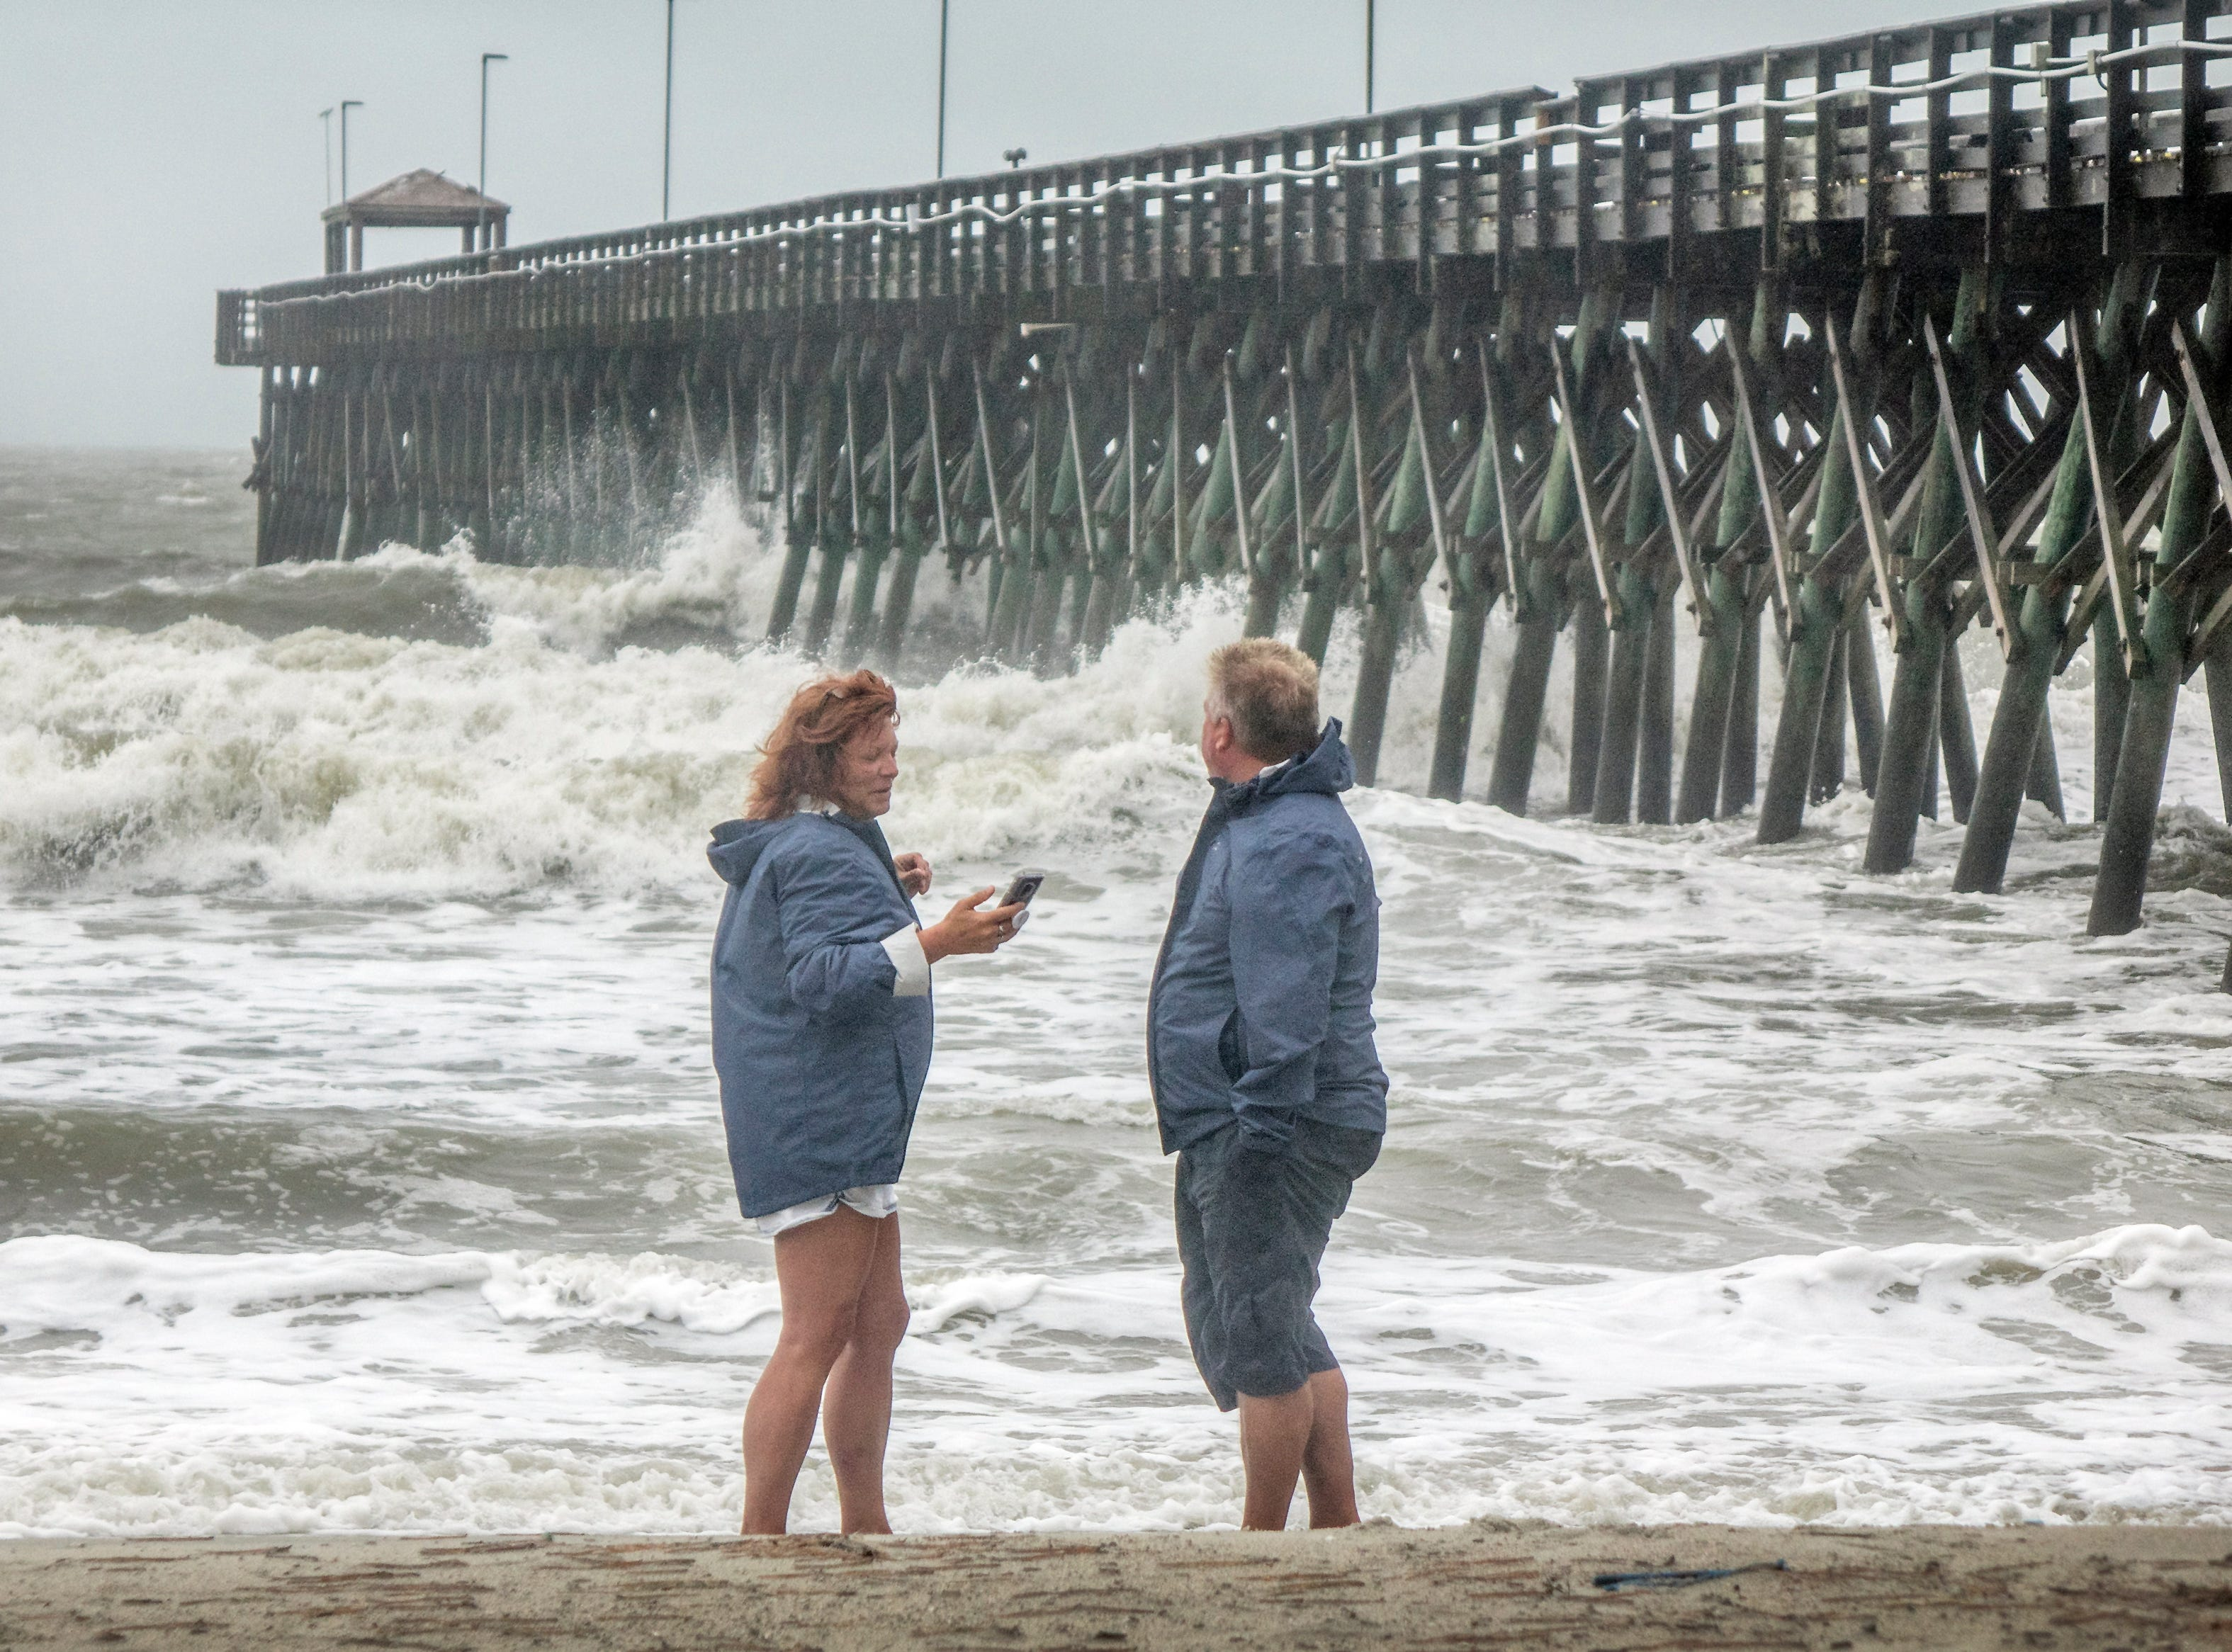 People walk on a beach in Myrtle Beach, S.C. on Sept. 2018. Hundreds of South Carolina's residents have decided to stay in their homes, ignoring the mandatory evacuation order.